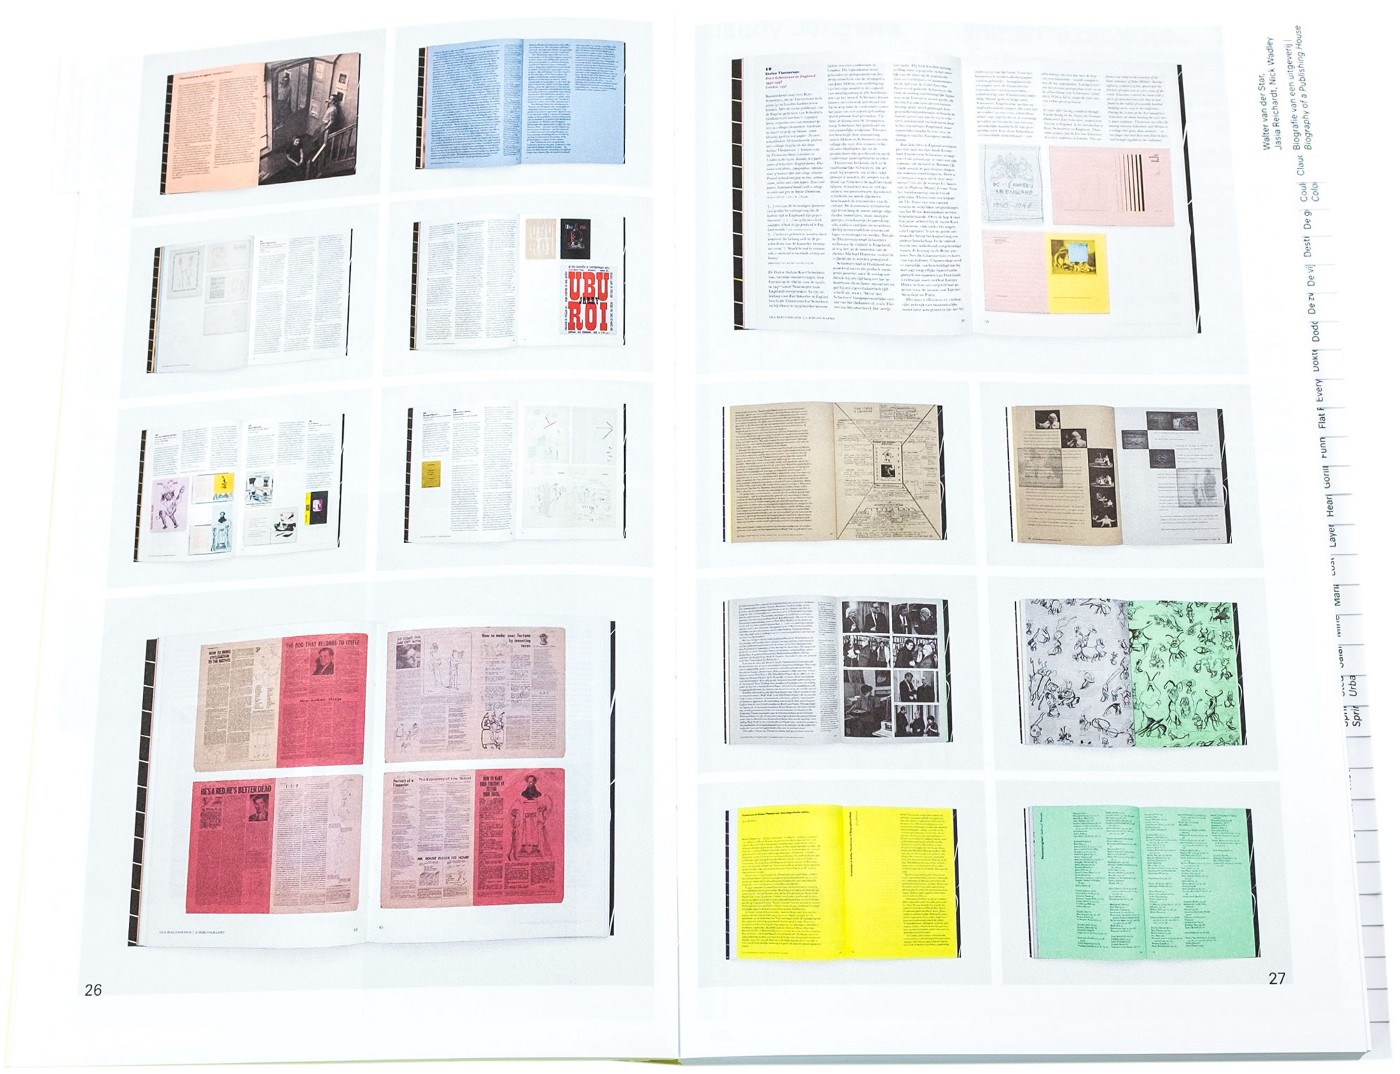 Photograph of a double page spread from inside, shows books photographed at smaller sizes over a double page spread